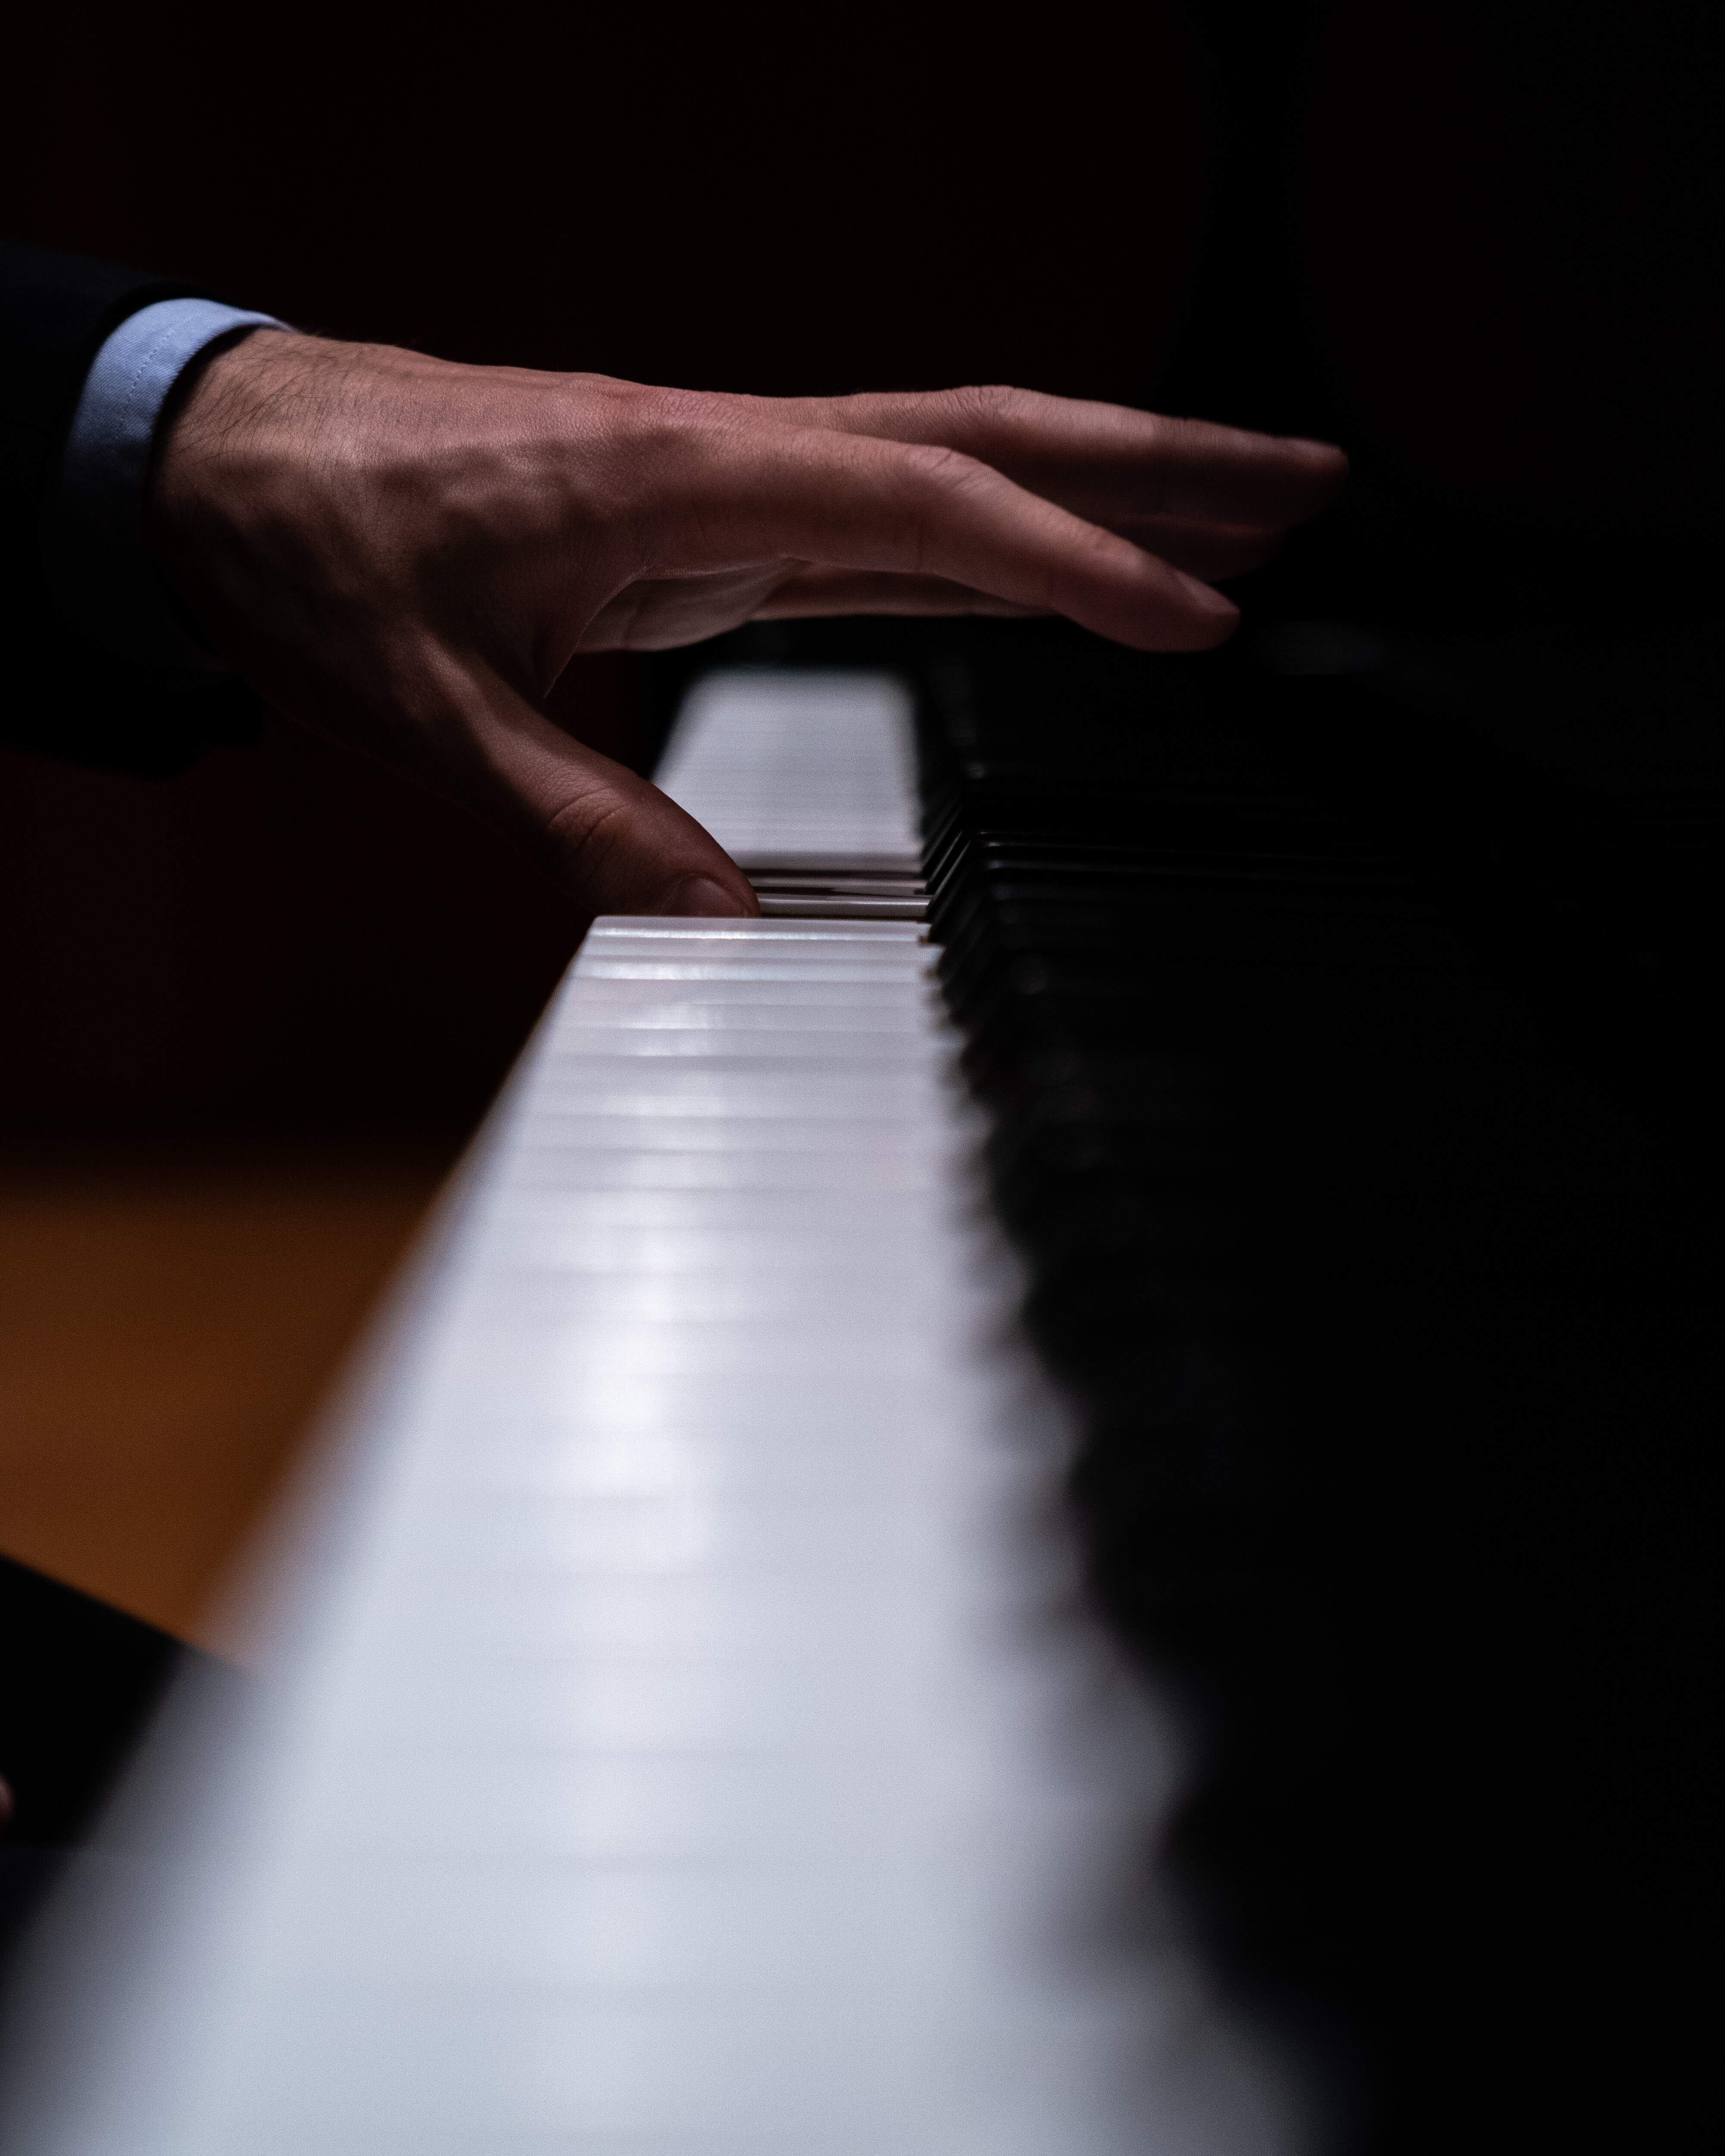 A single hand playing the beautiful black and white keys of a Steinway grand piano.